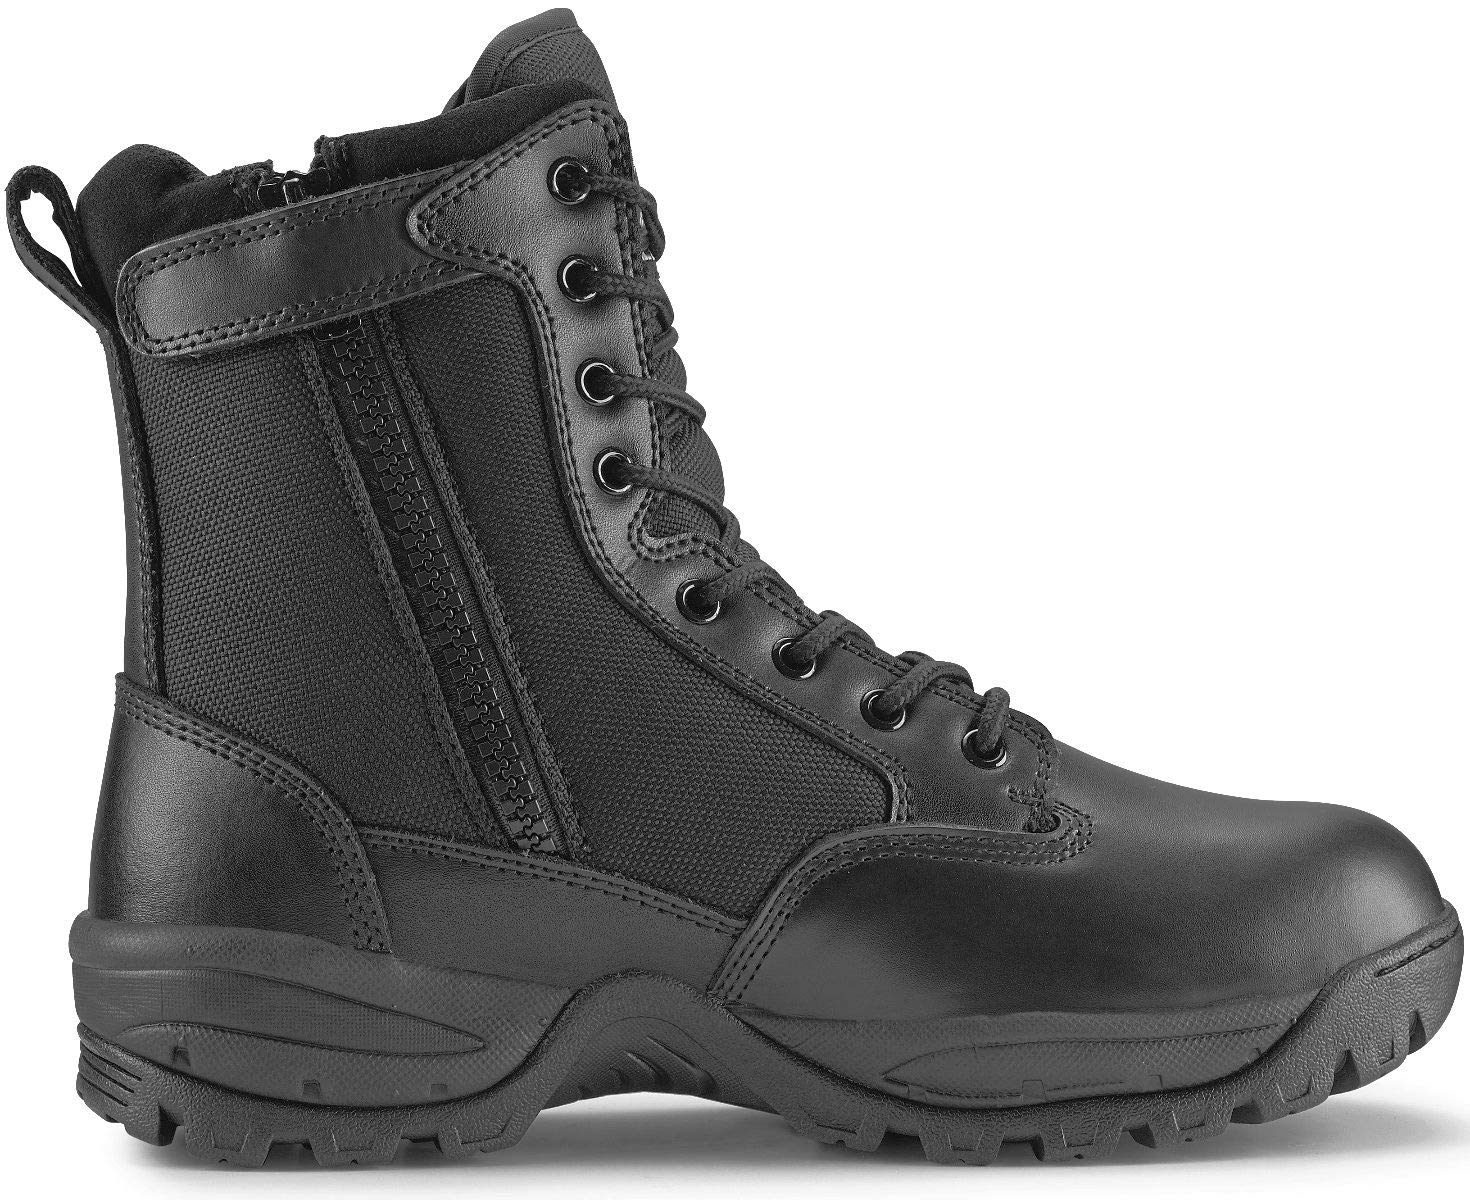 Maelstrom Men's TAC Force Waterproof Military Tactical Boots with Zipper, Style # T5180Z WP, Black, 8'', Waterproof, Size 8M